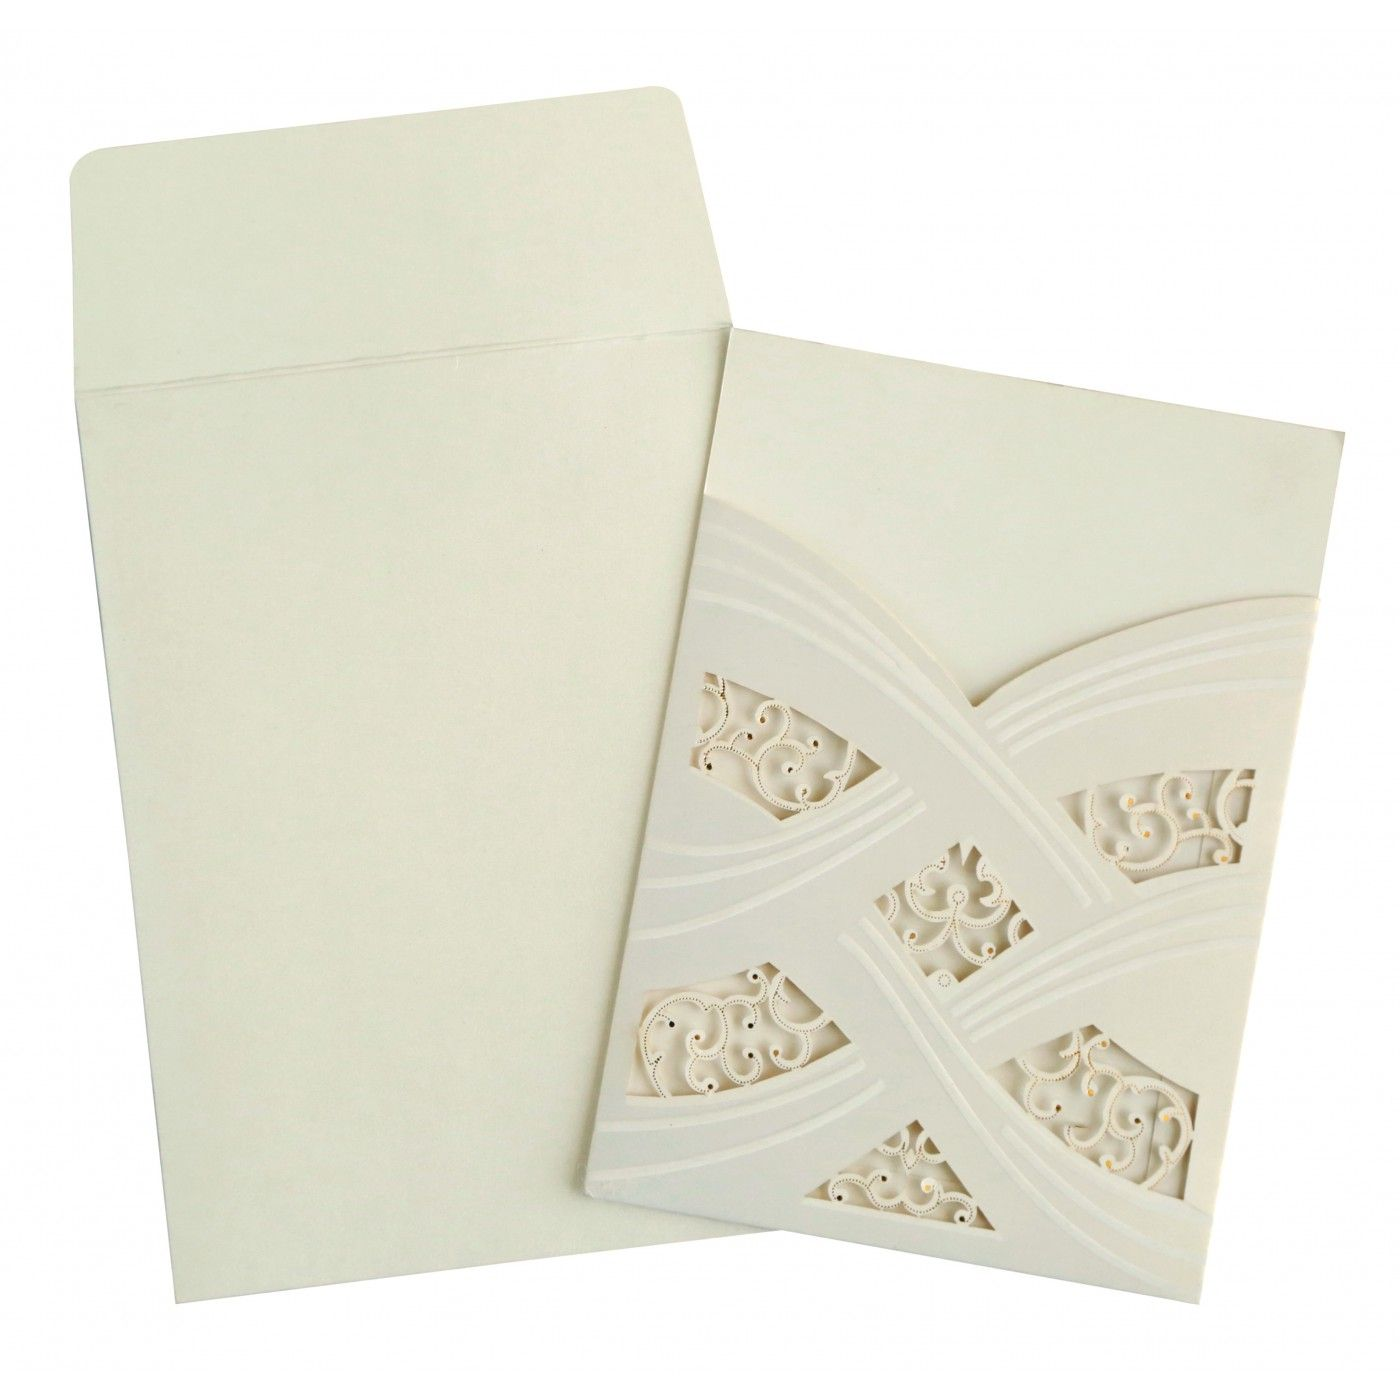 IVORY SHIMMERY LASER CUT WEDDING CARD : CRU-1590 - IndianWeddingCards